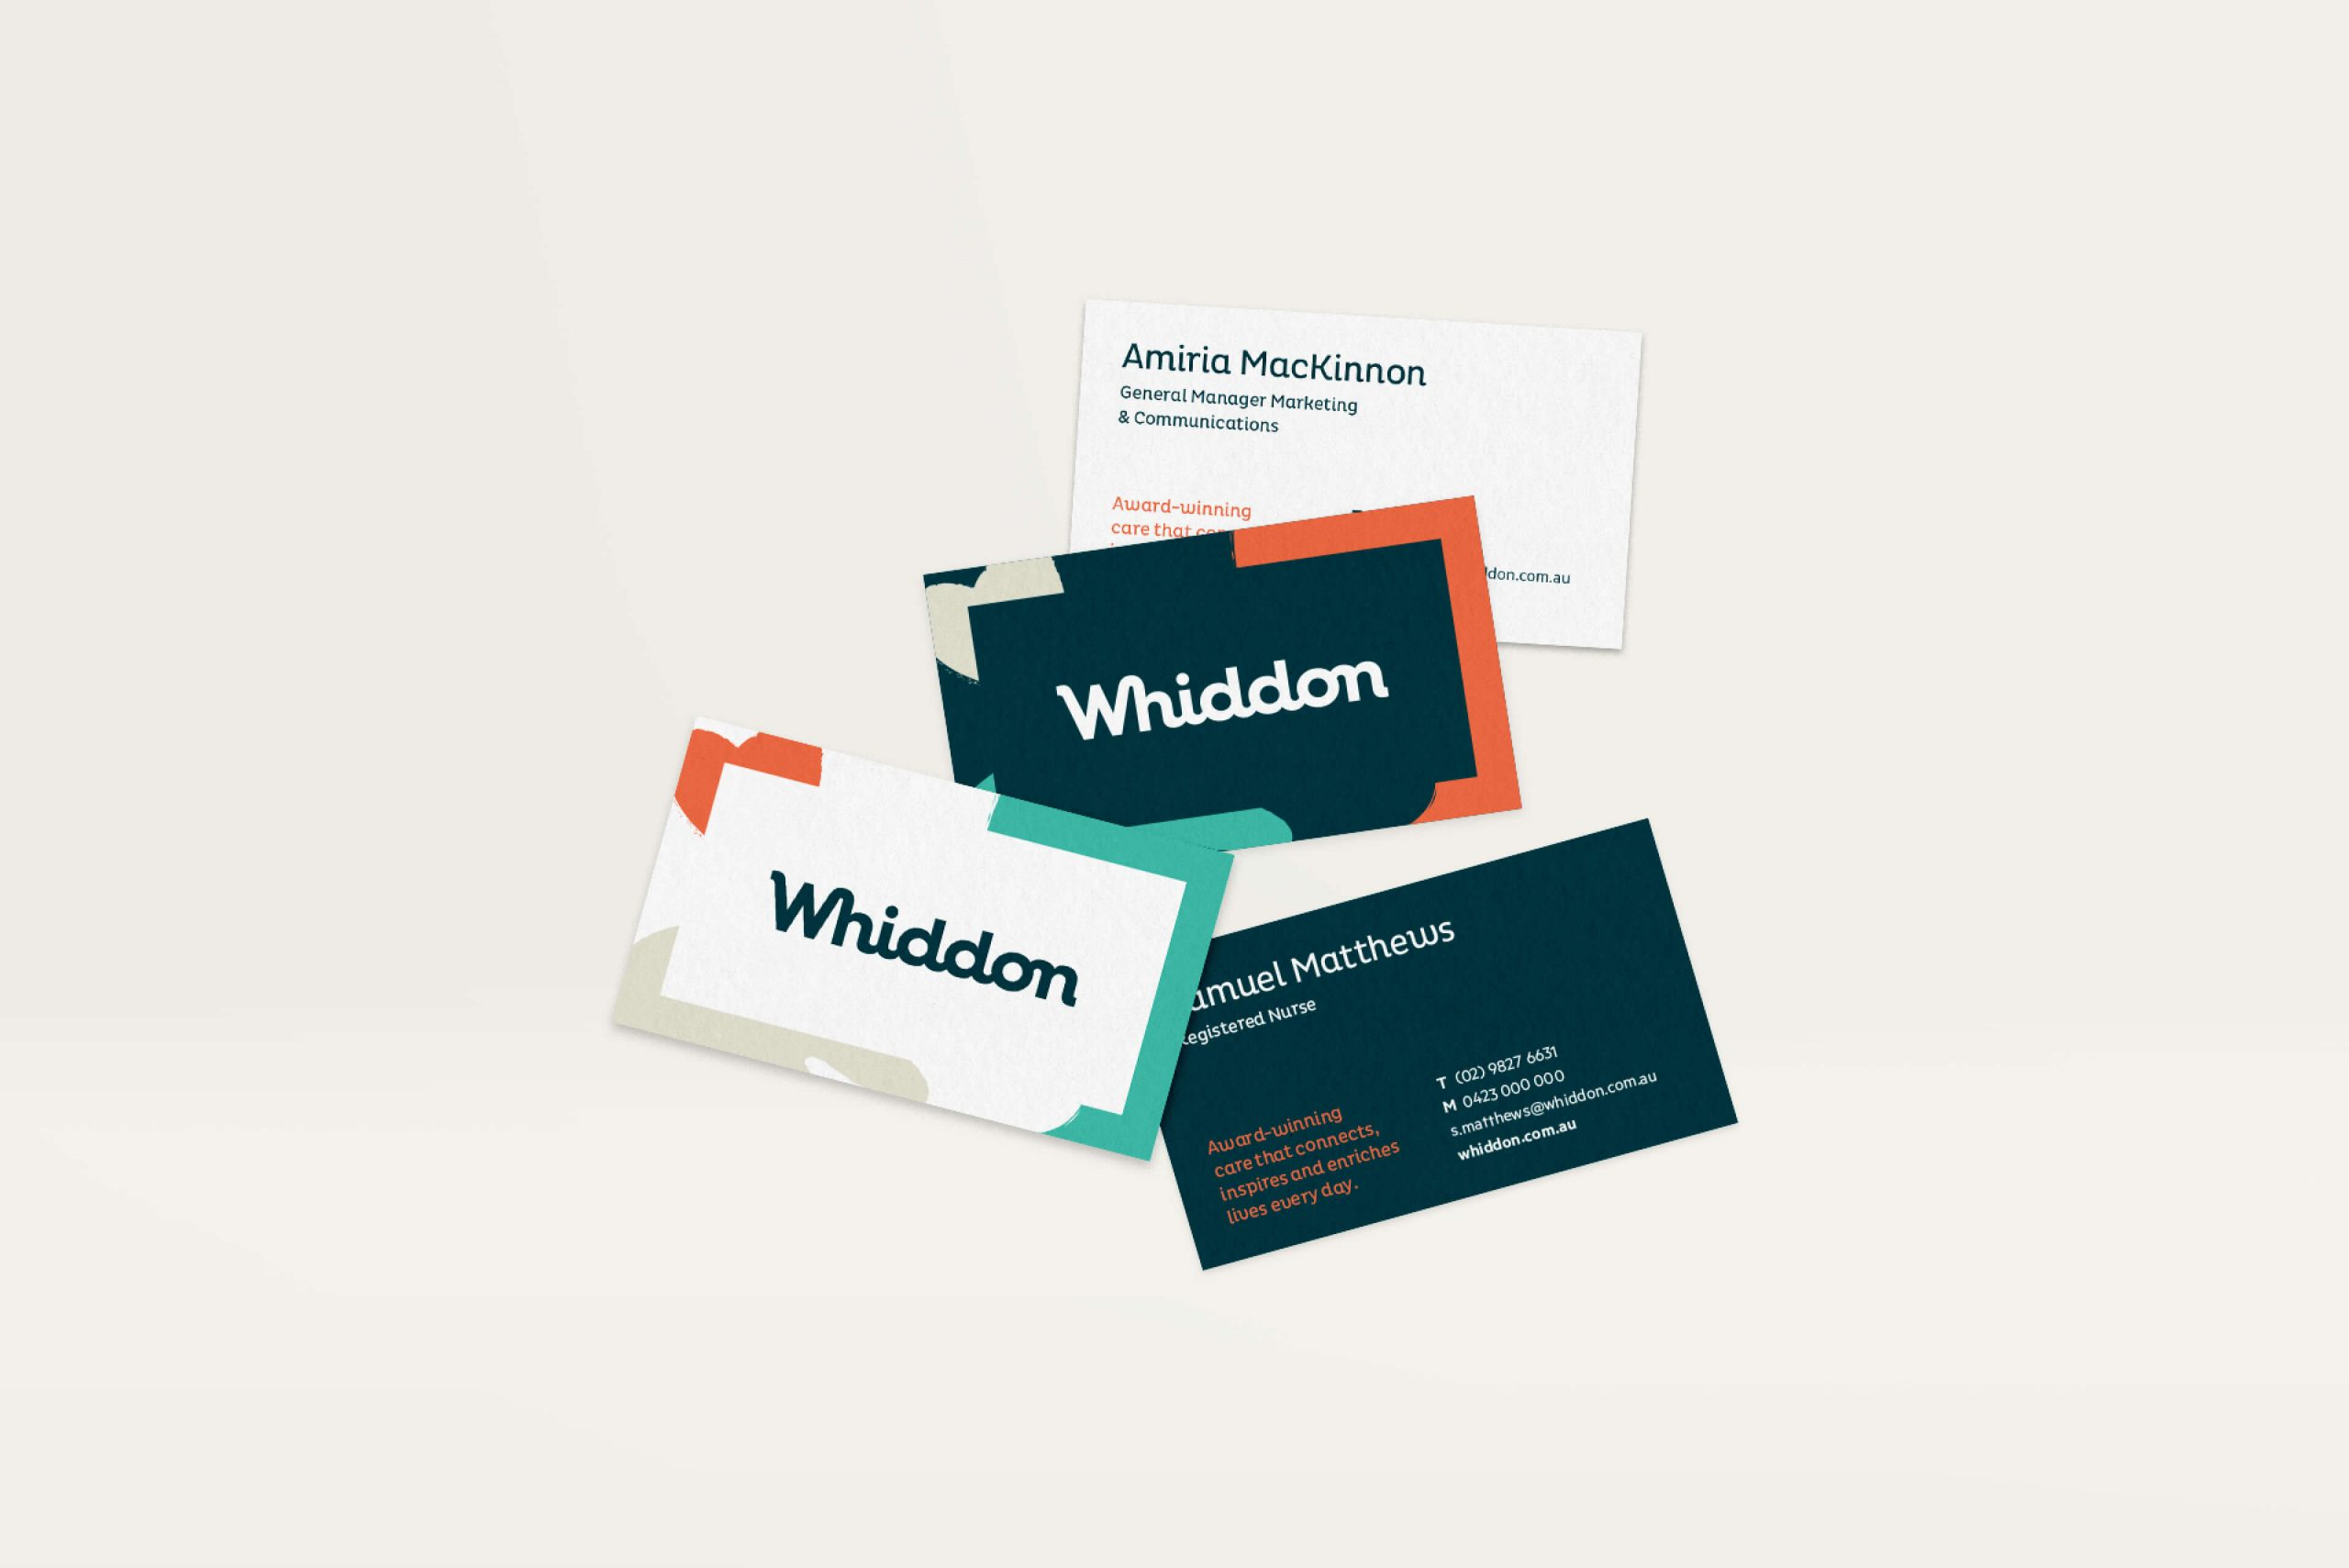 Whiddon Brand Refresh - Business cards